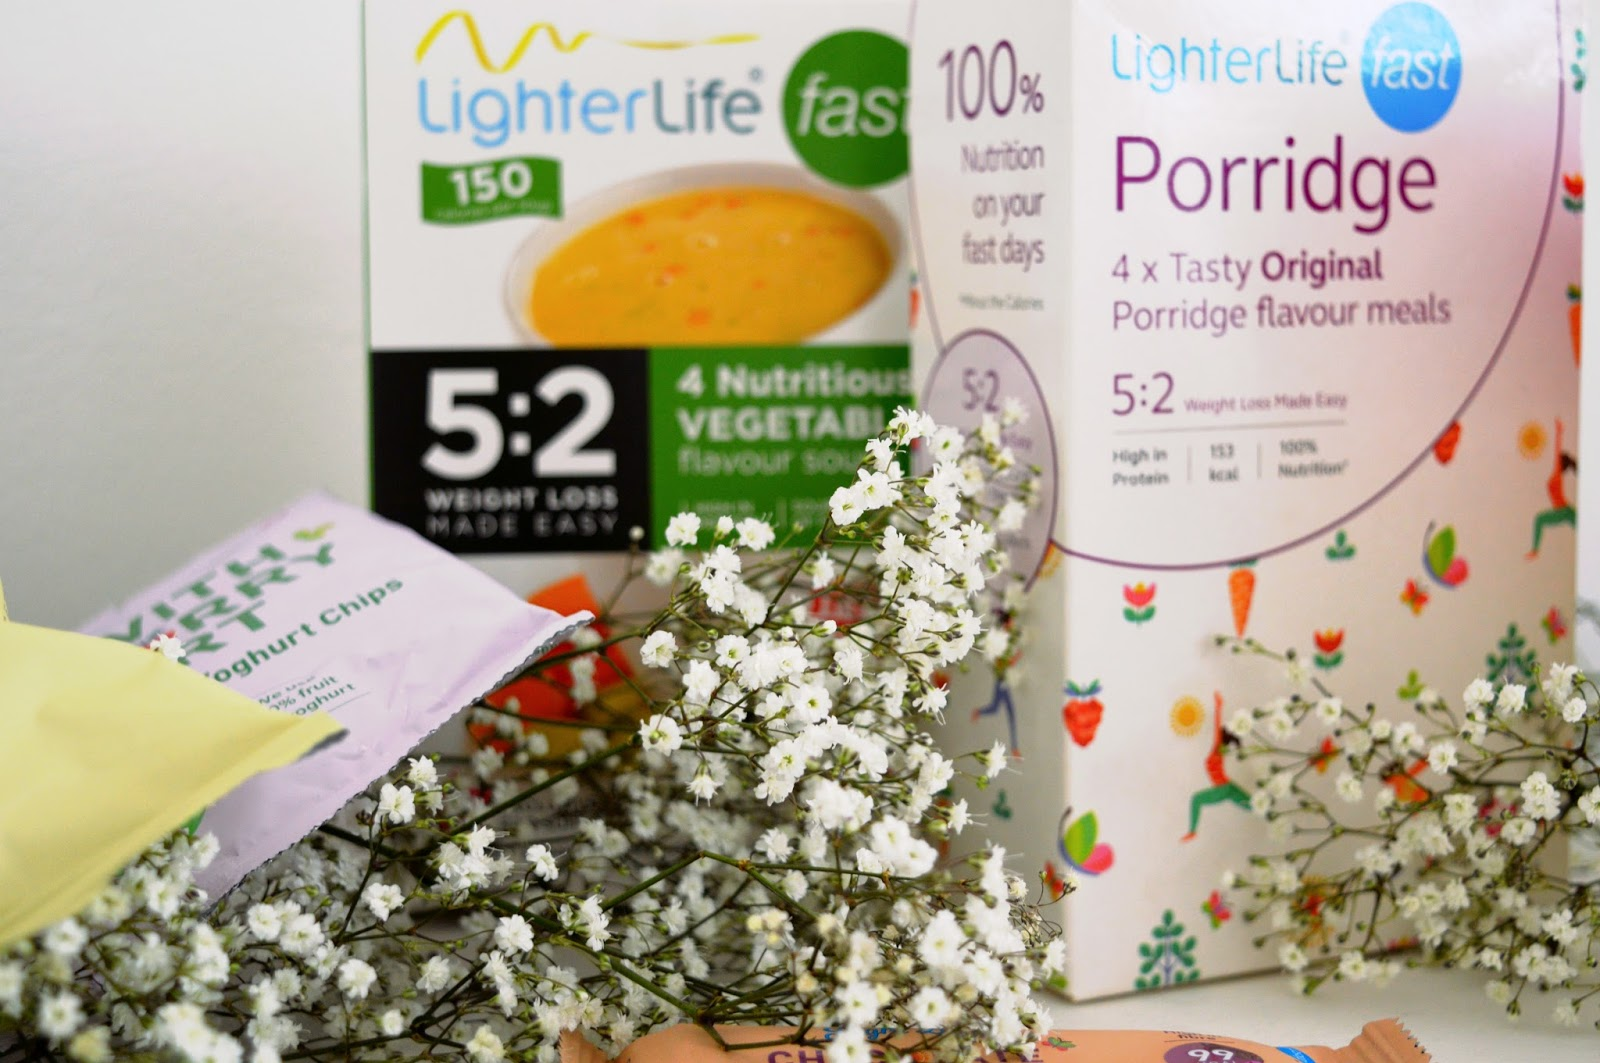 LighterLife Fast 5:2 diet review, food blogs, UK lifestyle bloggers